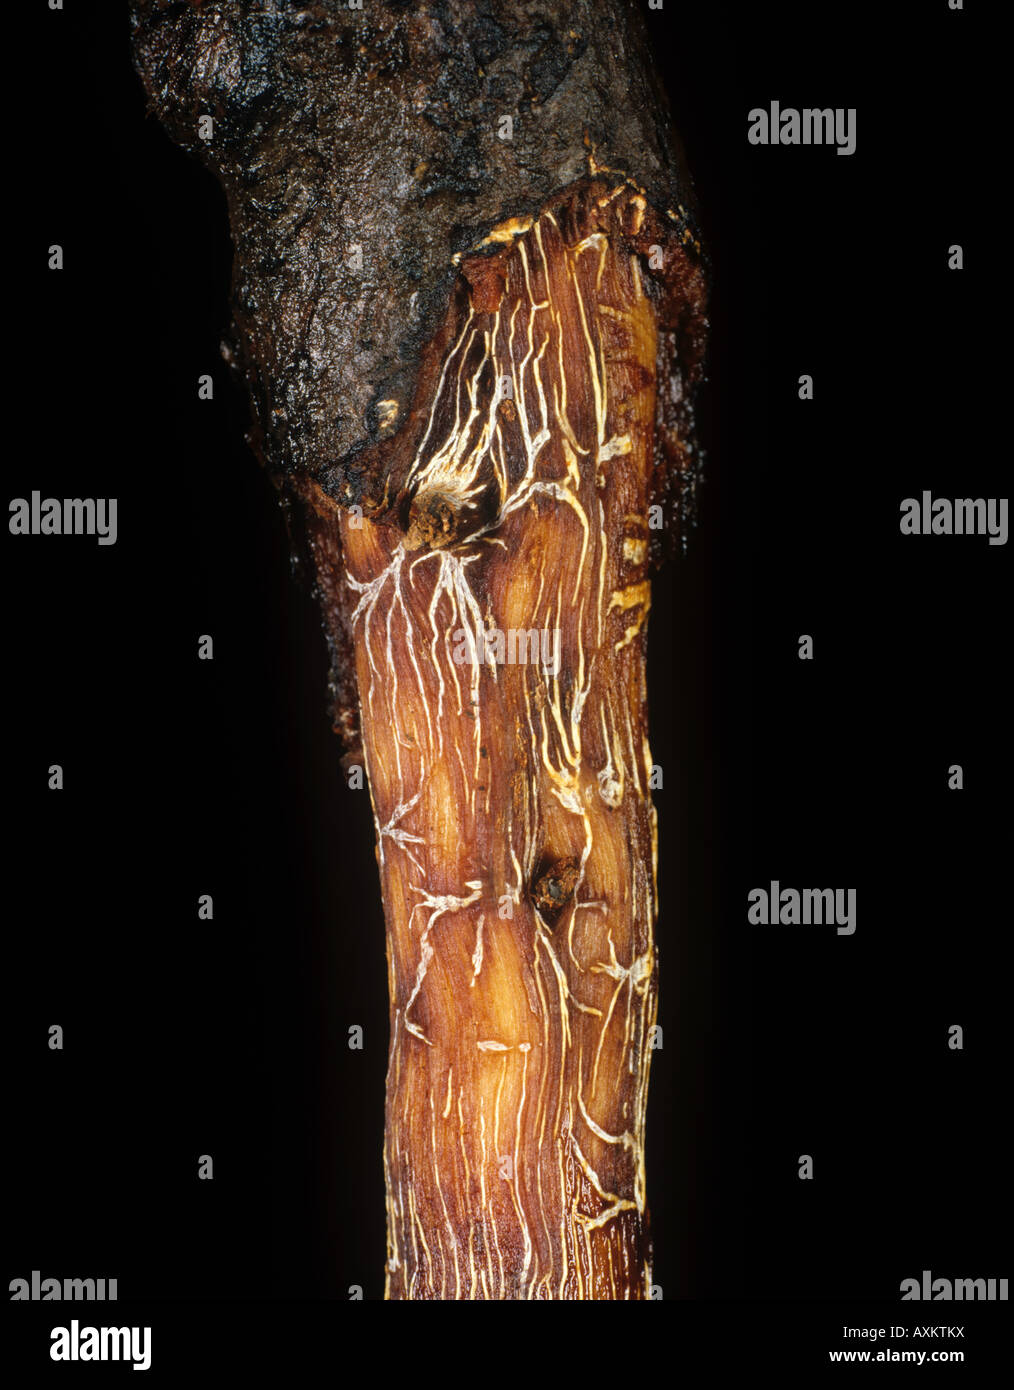 Black root rot Rosellinia pepo star mycelium on cocoa roots Colombia - Stock Image